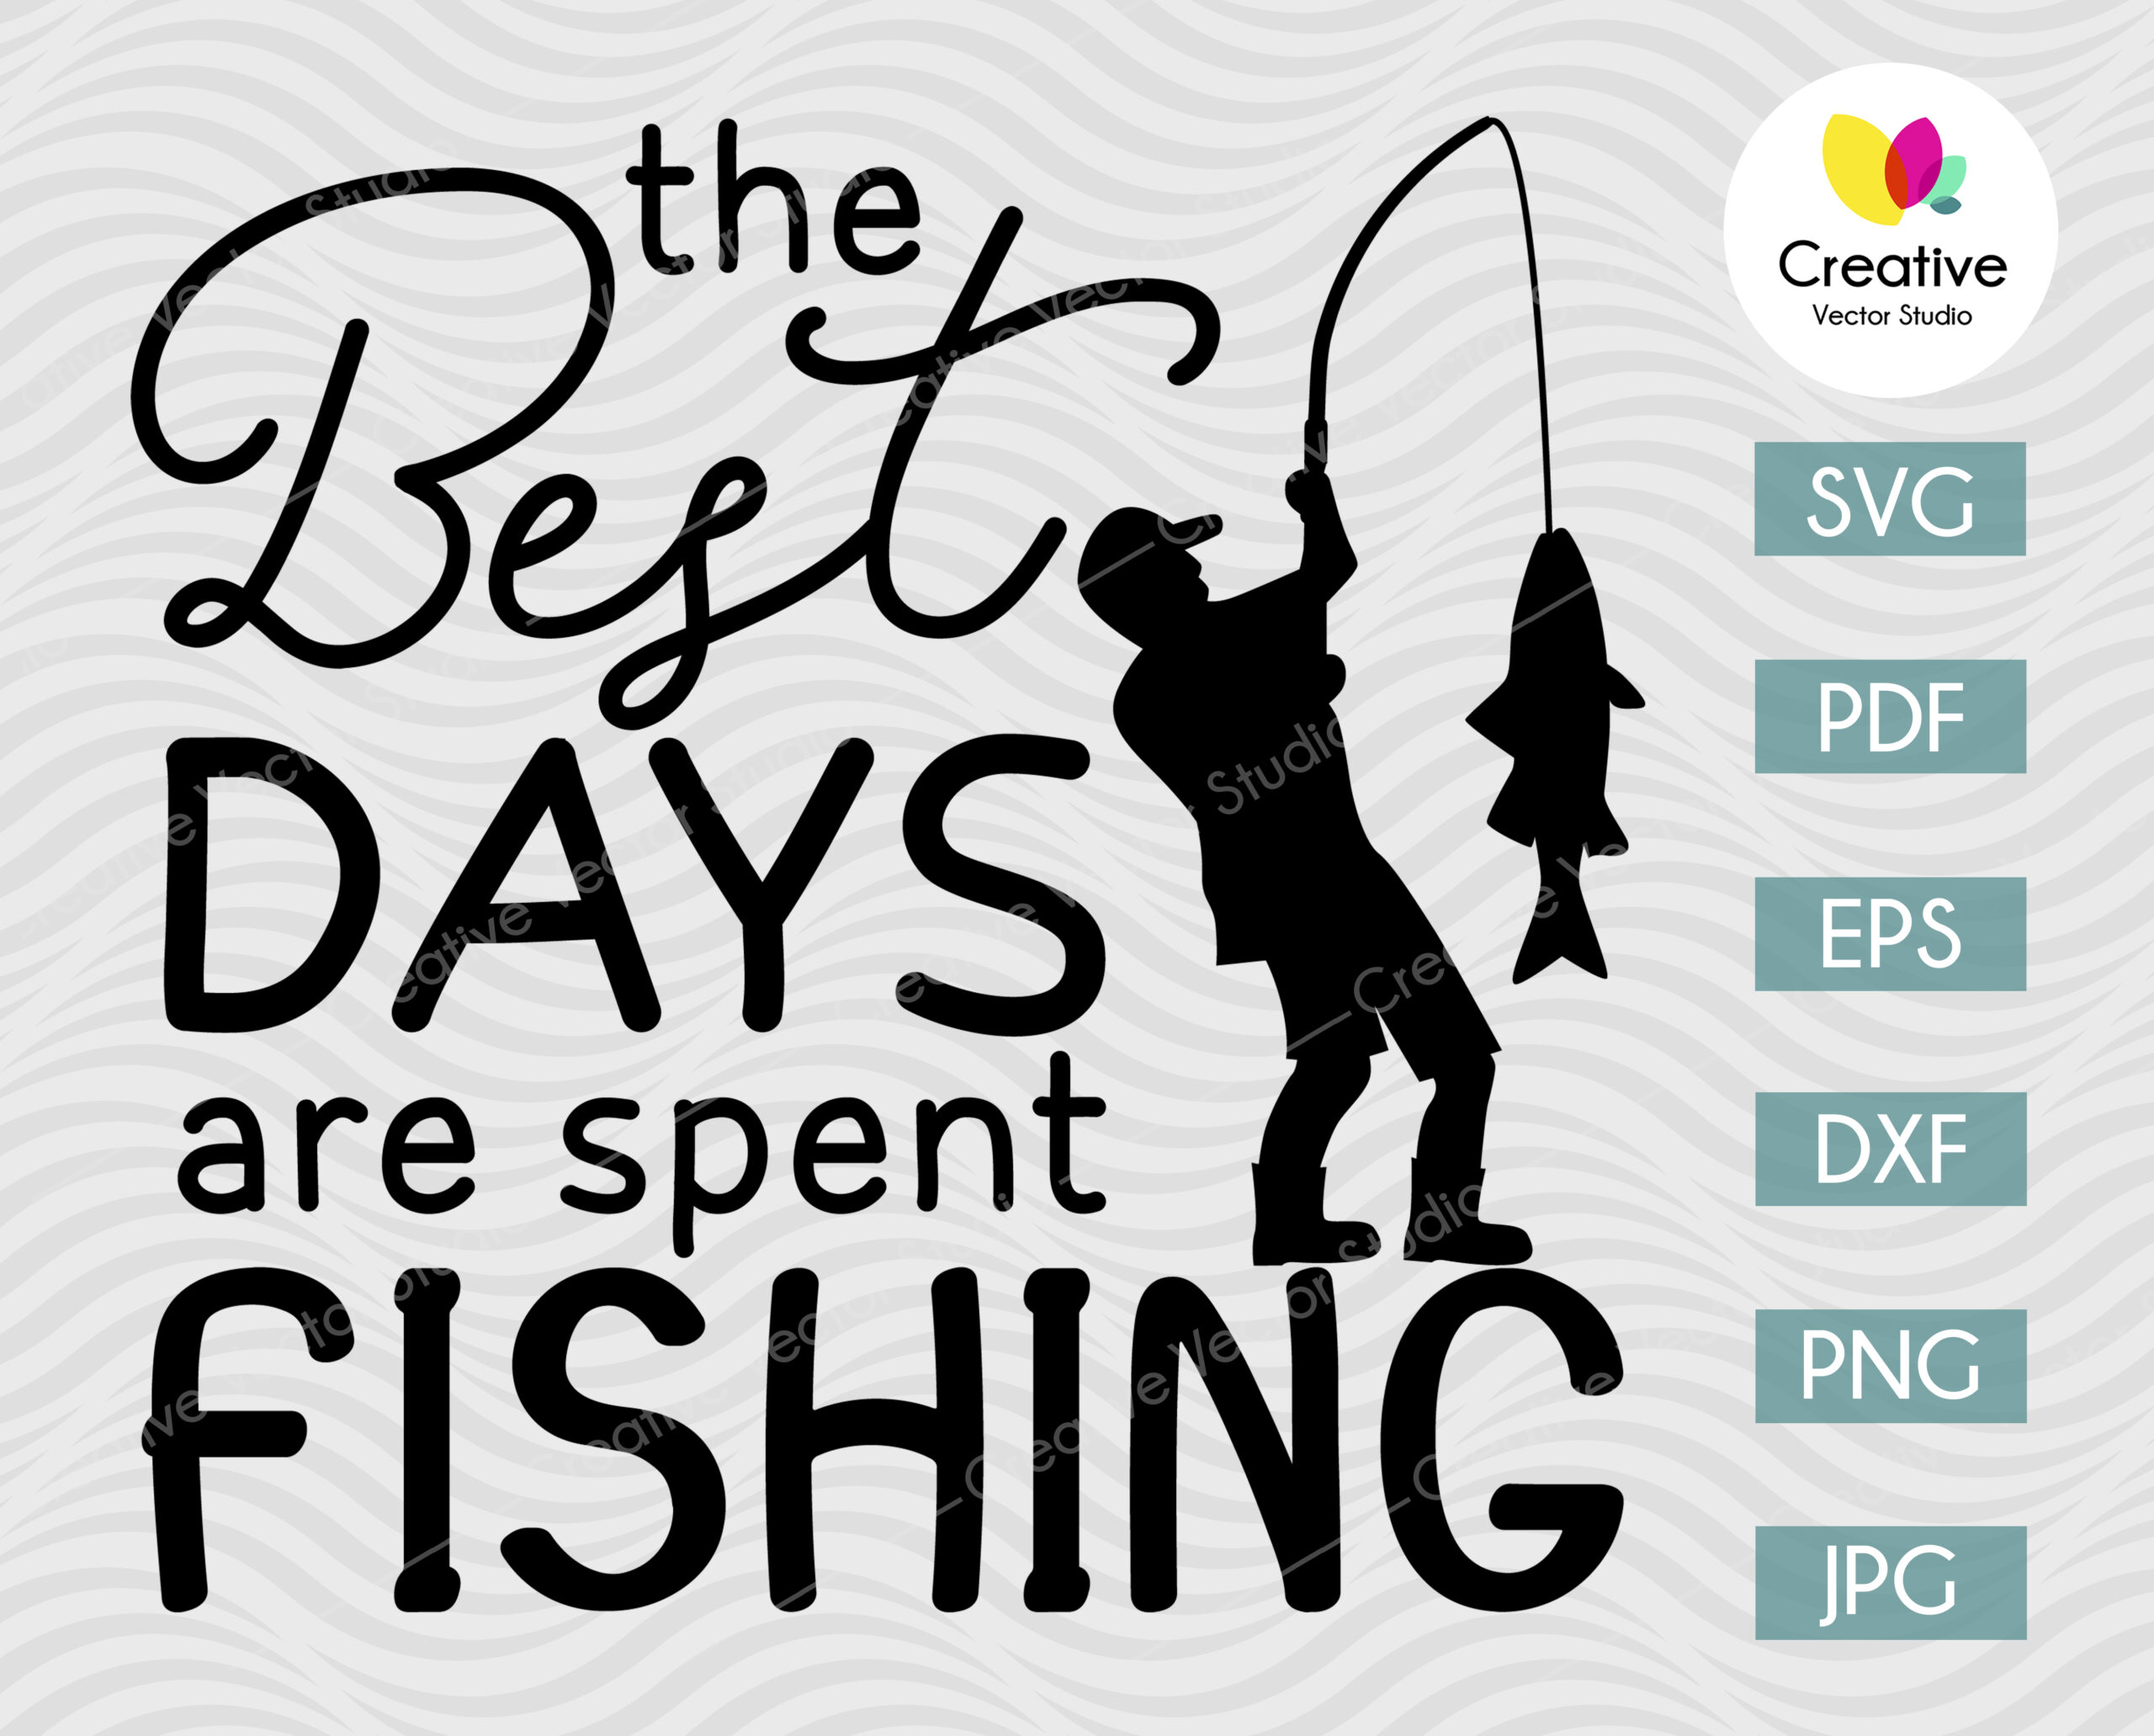 Download The Best Days Are Spent Fishing Svg Creative Vector Studio